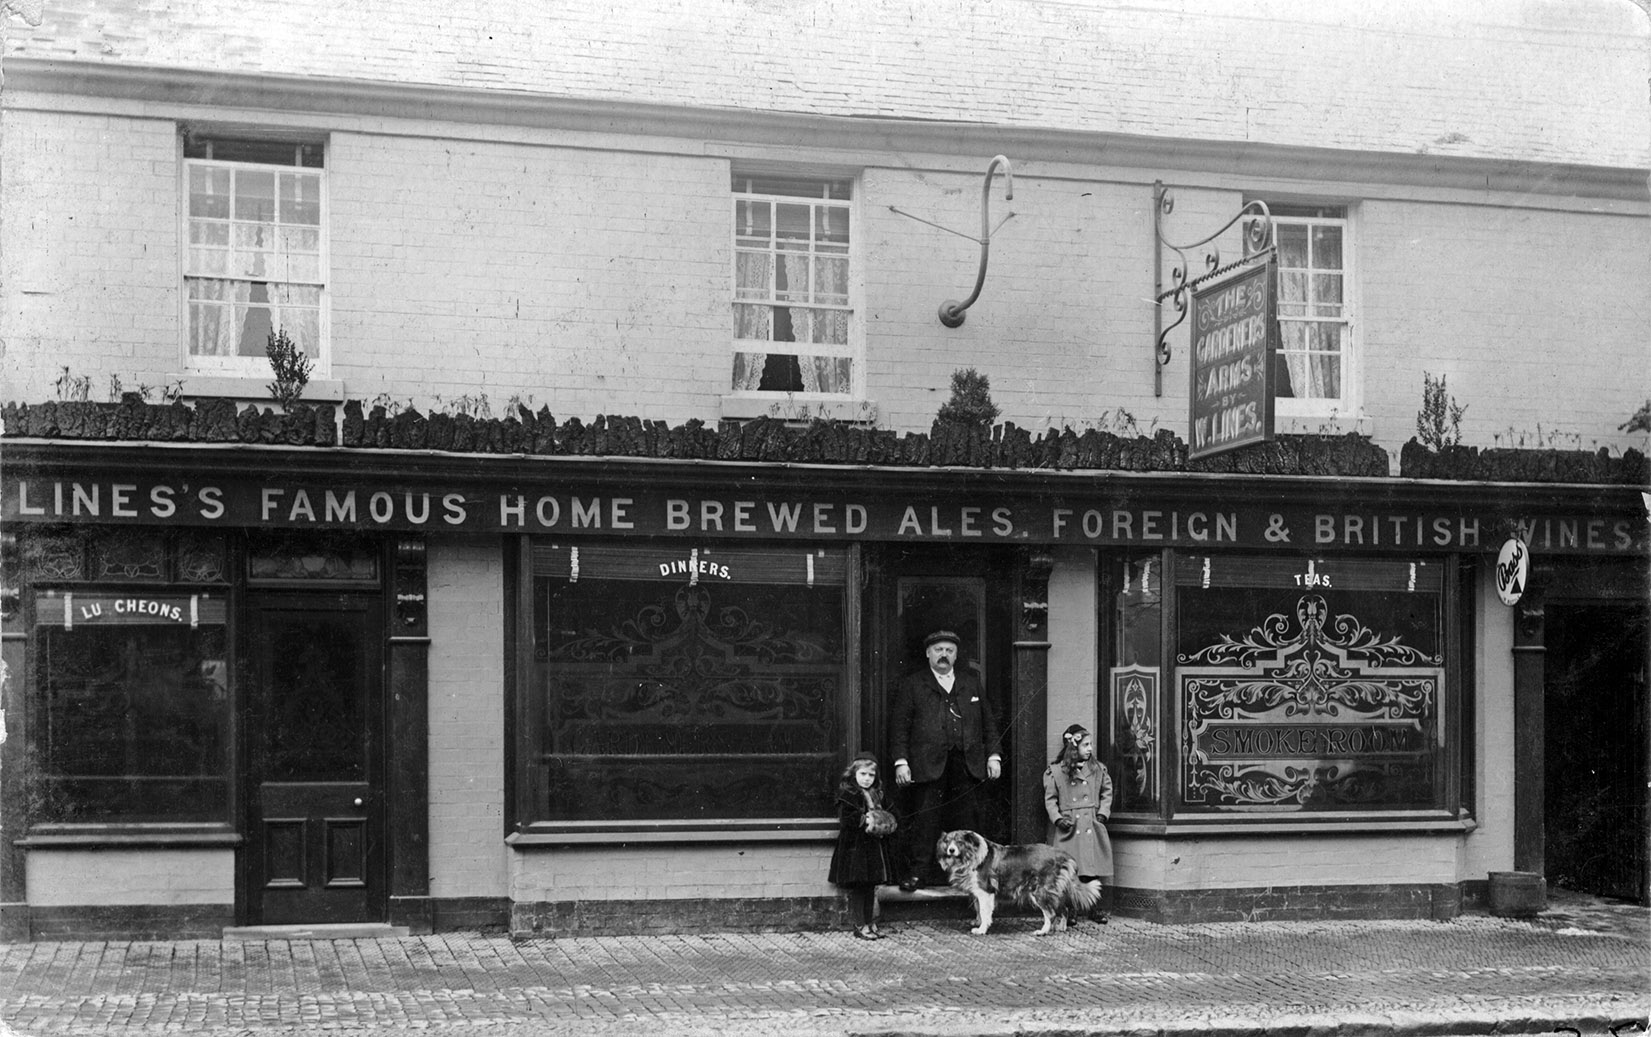 The timber-framed Gardeners' Arms opened in Solihull High Street in the 1860s and was demolished in 1971. There was a murder at the pub in 1880 when a young Irishman was shot and killed. The murderer (also an Irishman) subsequently fled to America for five years but was brought to trial in 1885, convicted of manslaughter, and sentenced to 20 years penal servitude. The Honey Club now occupies the site of the Gardeners' Arms.